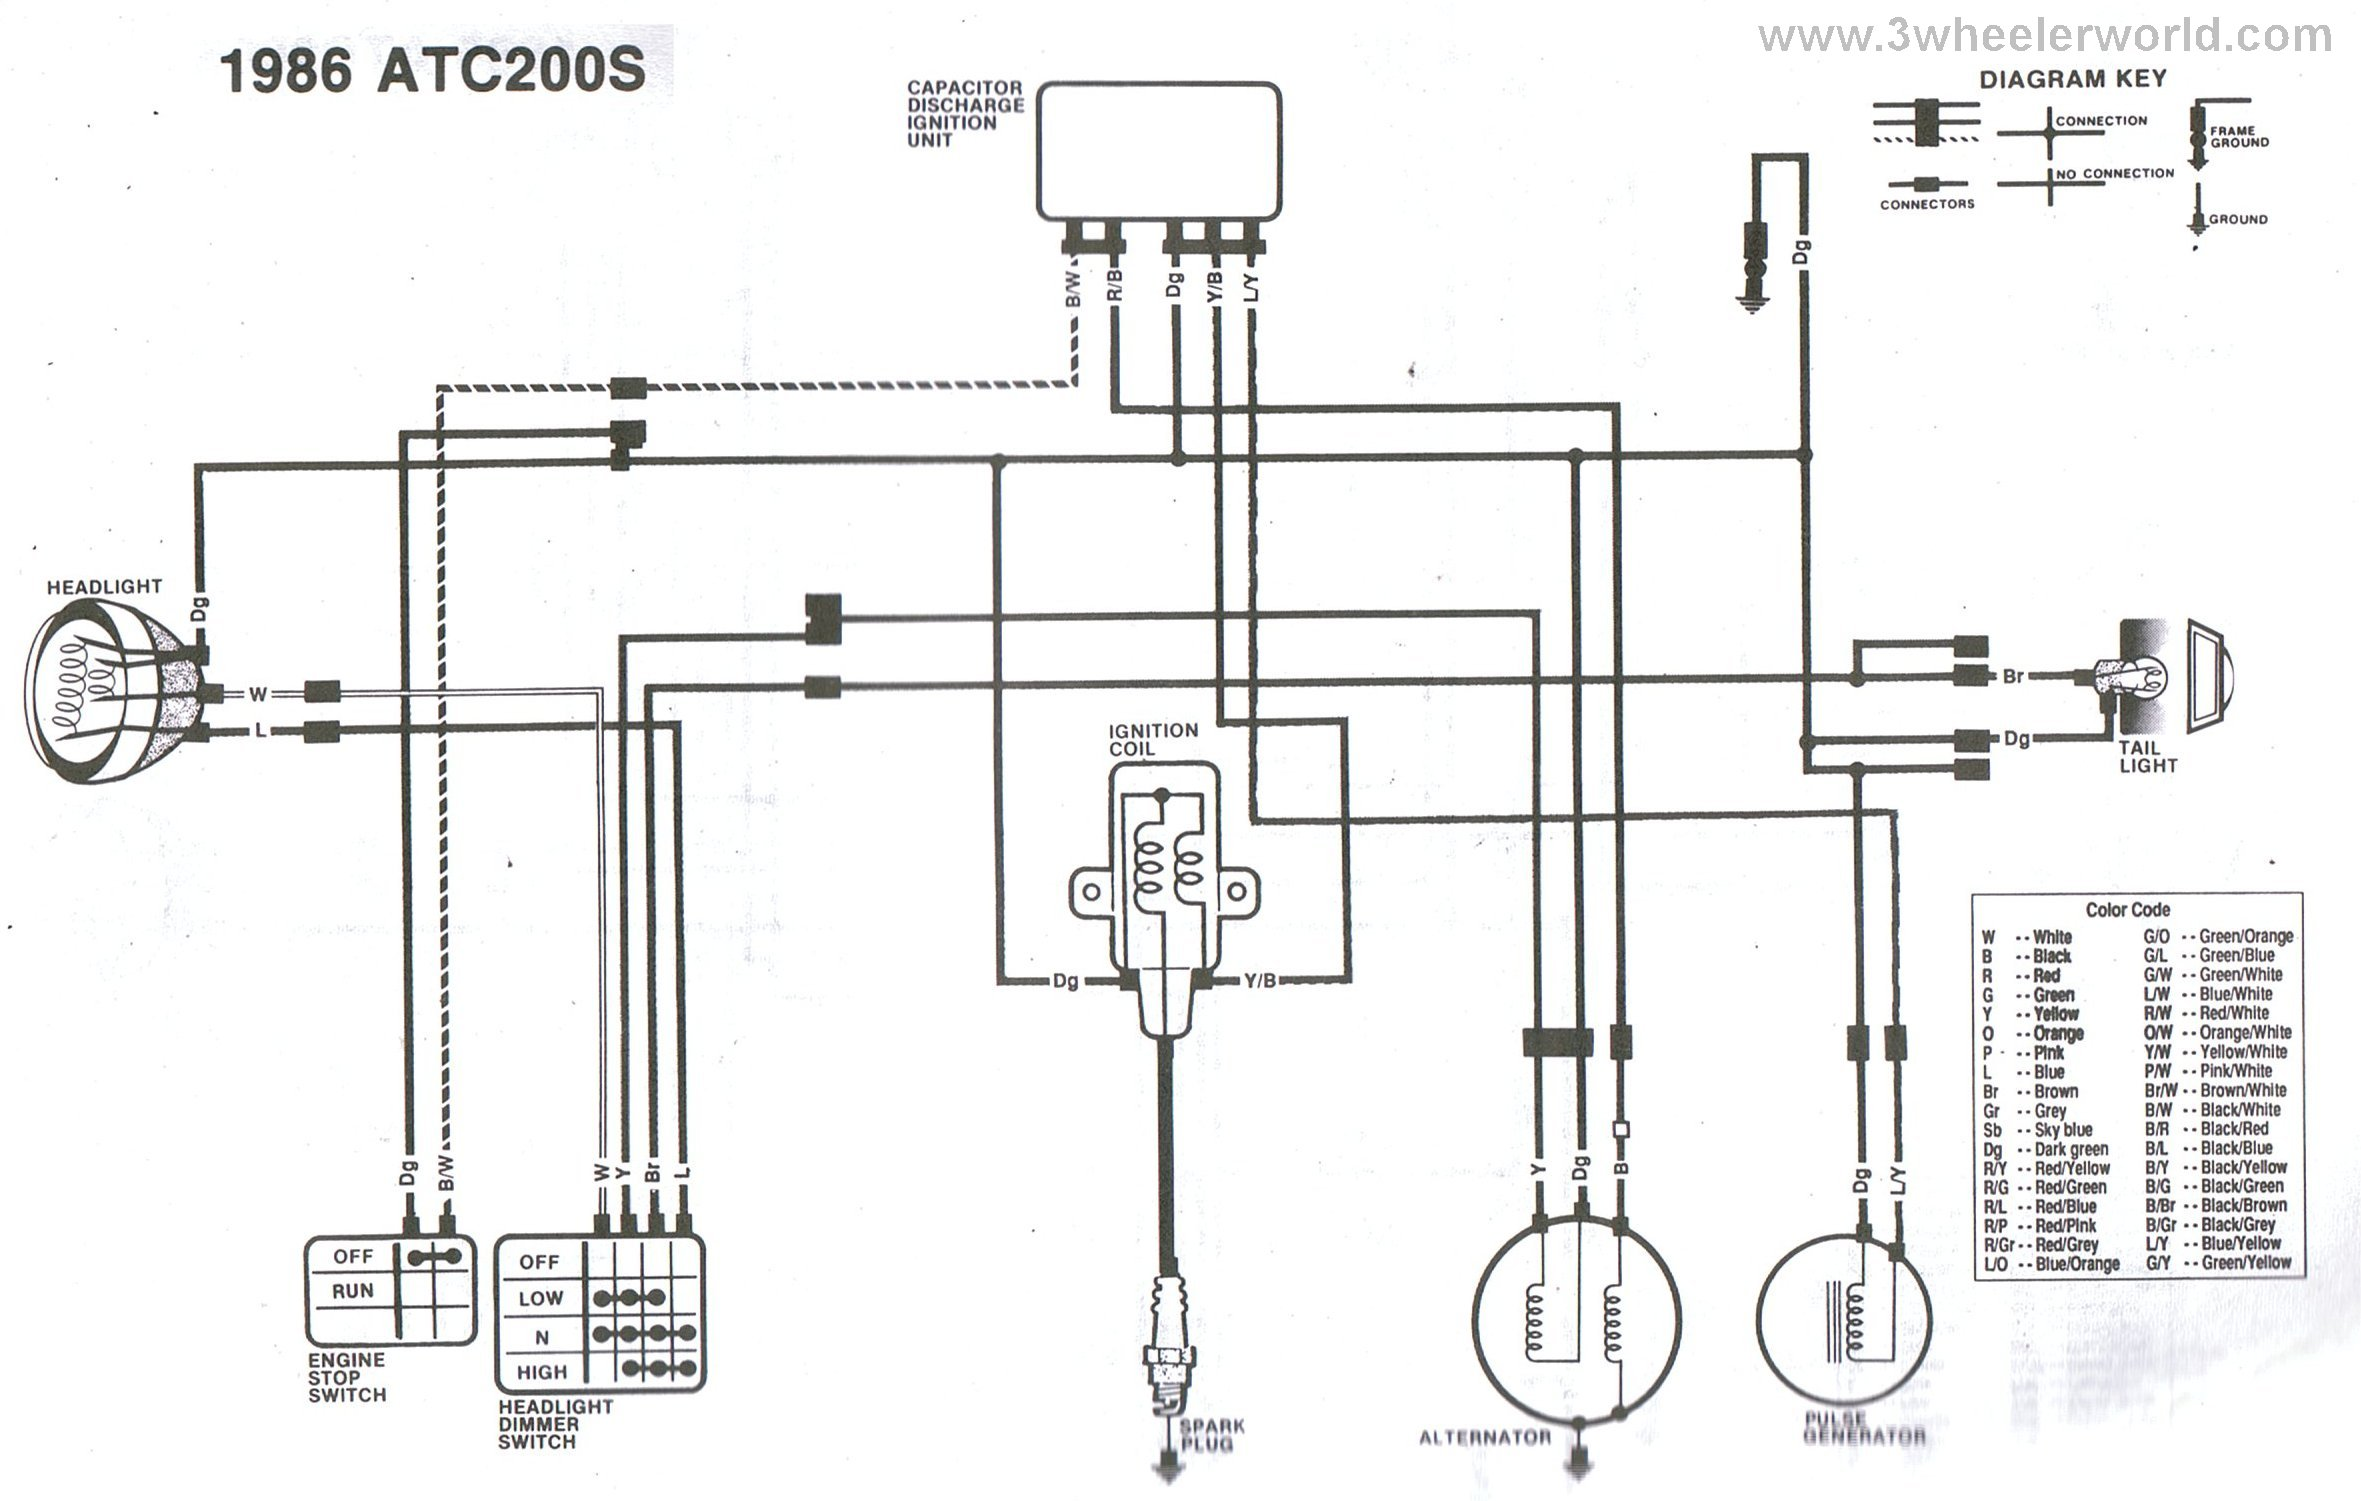 Honda 3 Wheeler Wiring Diagram - Technical Diagrams on